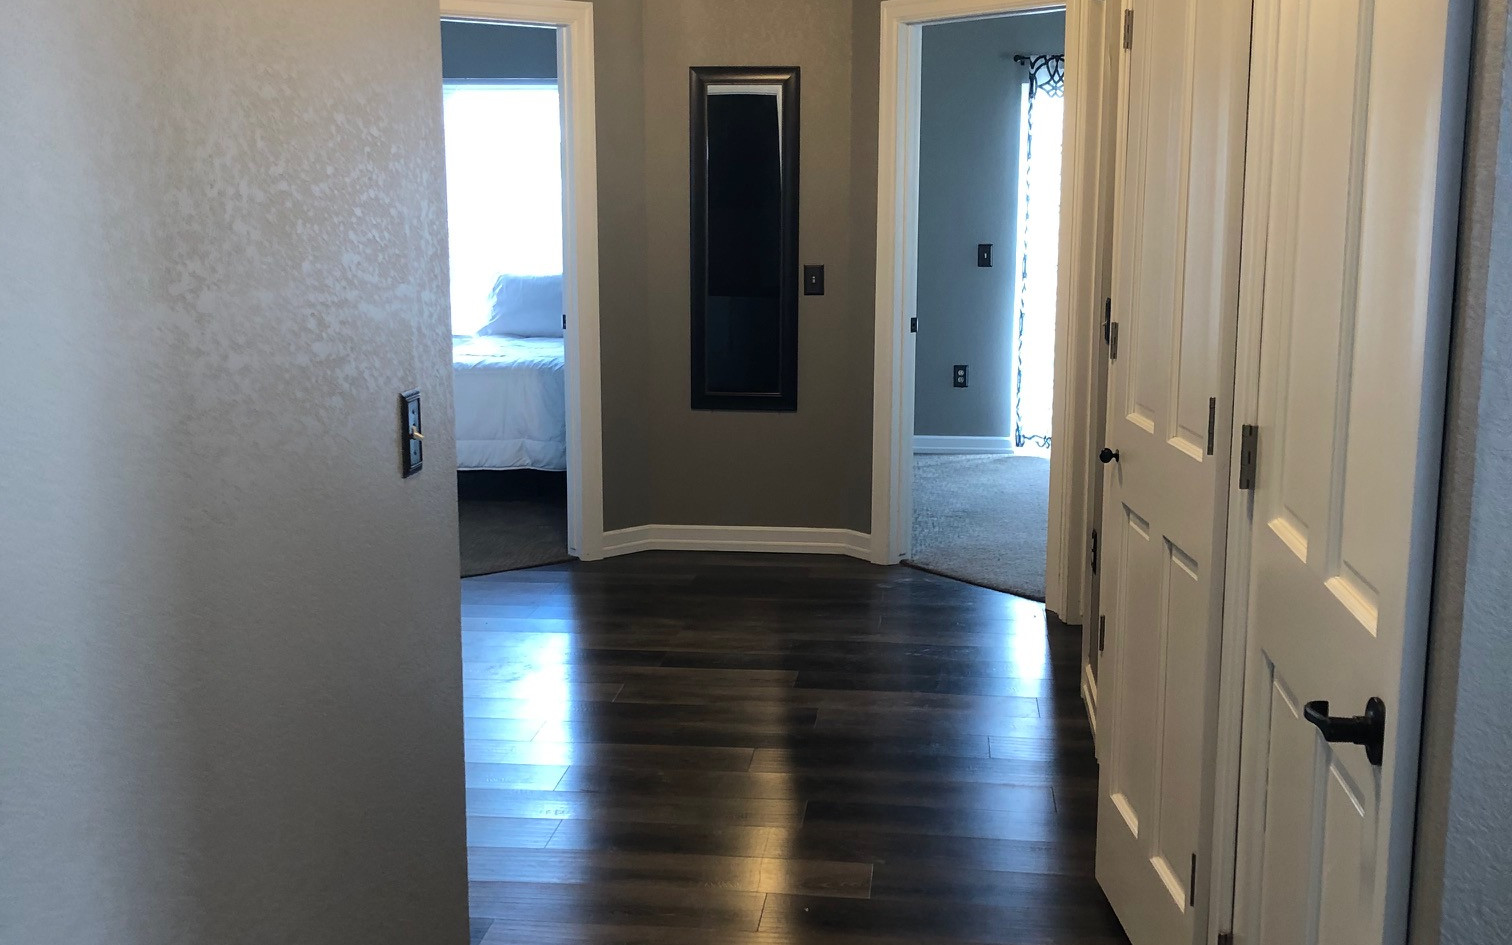 Downstairs Entry Hallway